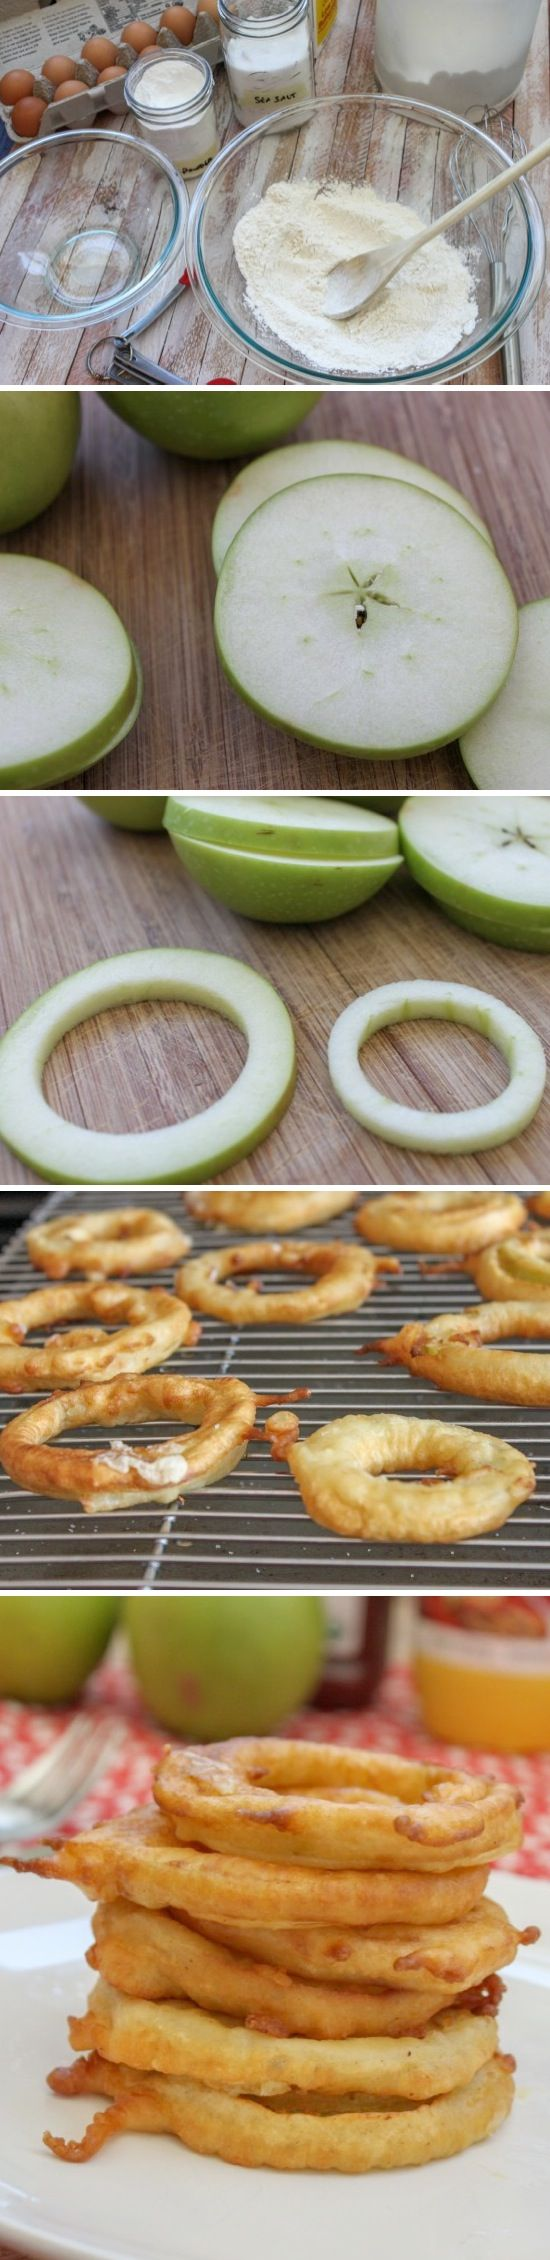 Fried Apple Rings ~ You could even drizzle them with a bit of caramel or chocolate. Yum!